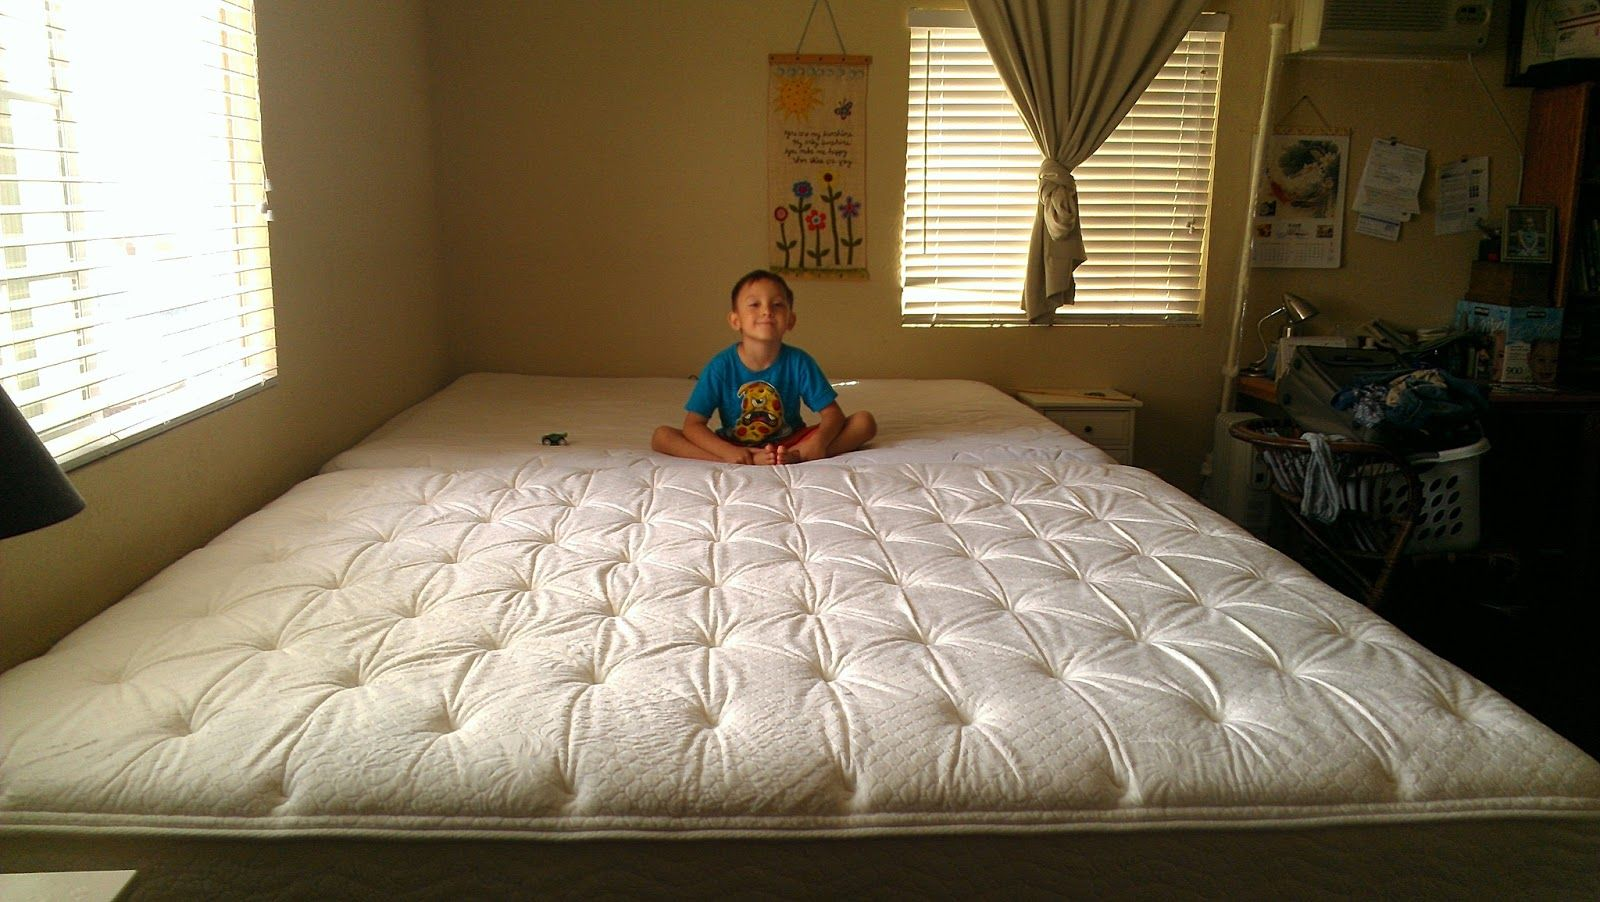 Our Huge New Family Bed Family bed, Room organization